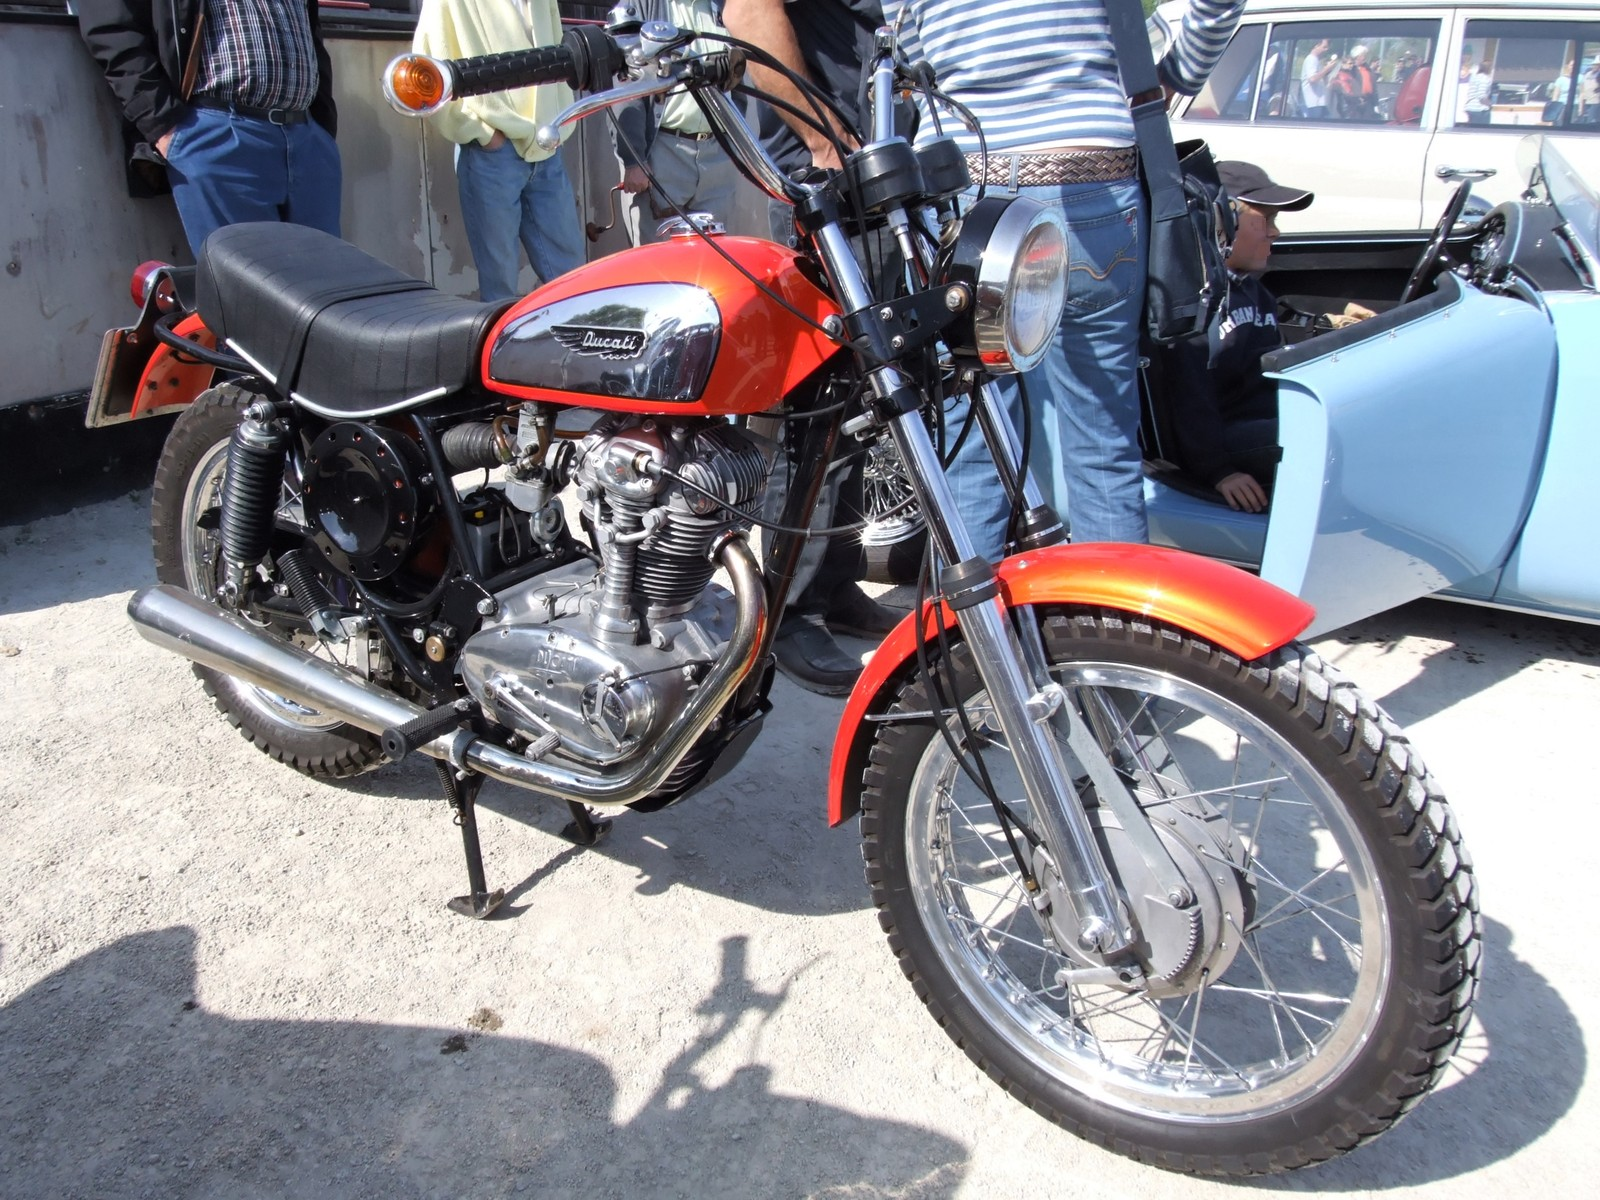 Ducati 250 Mark 3 1973 images #78581